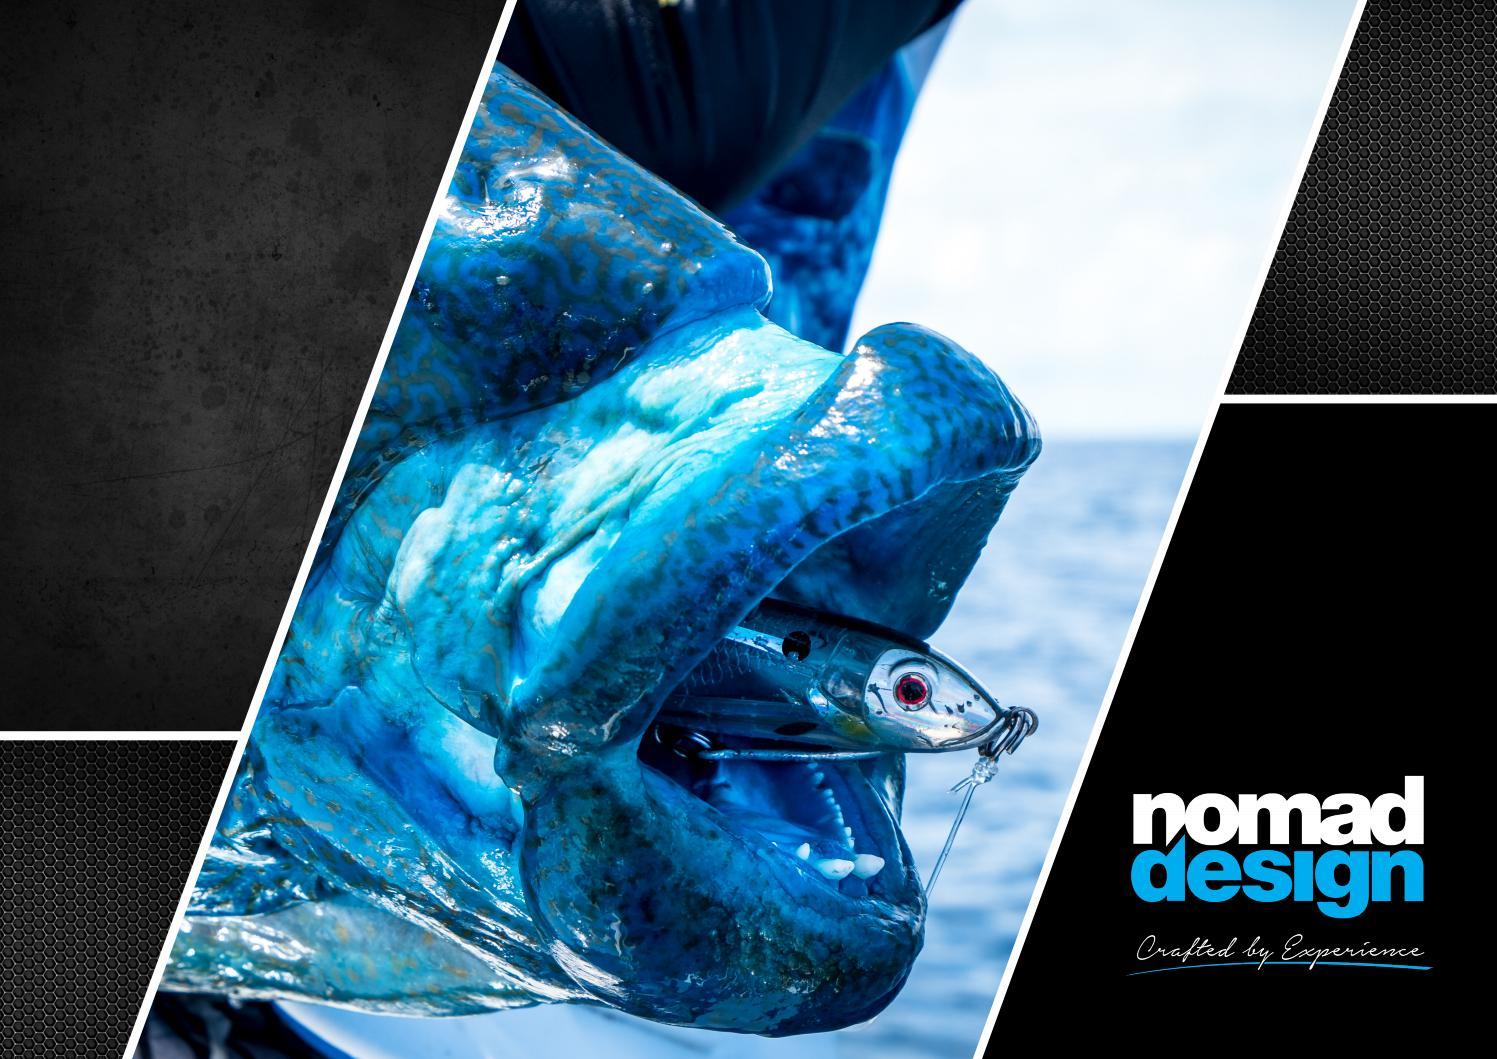 Nomad Design Tackle Usa Product Guide By Issuu Lure Minnow 85 Cm 68gr Crank Bait Treble Hook Crankbait